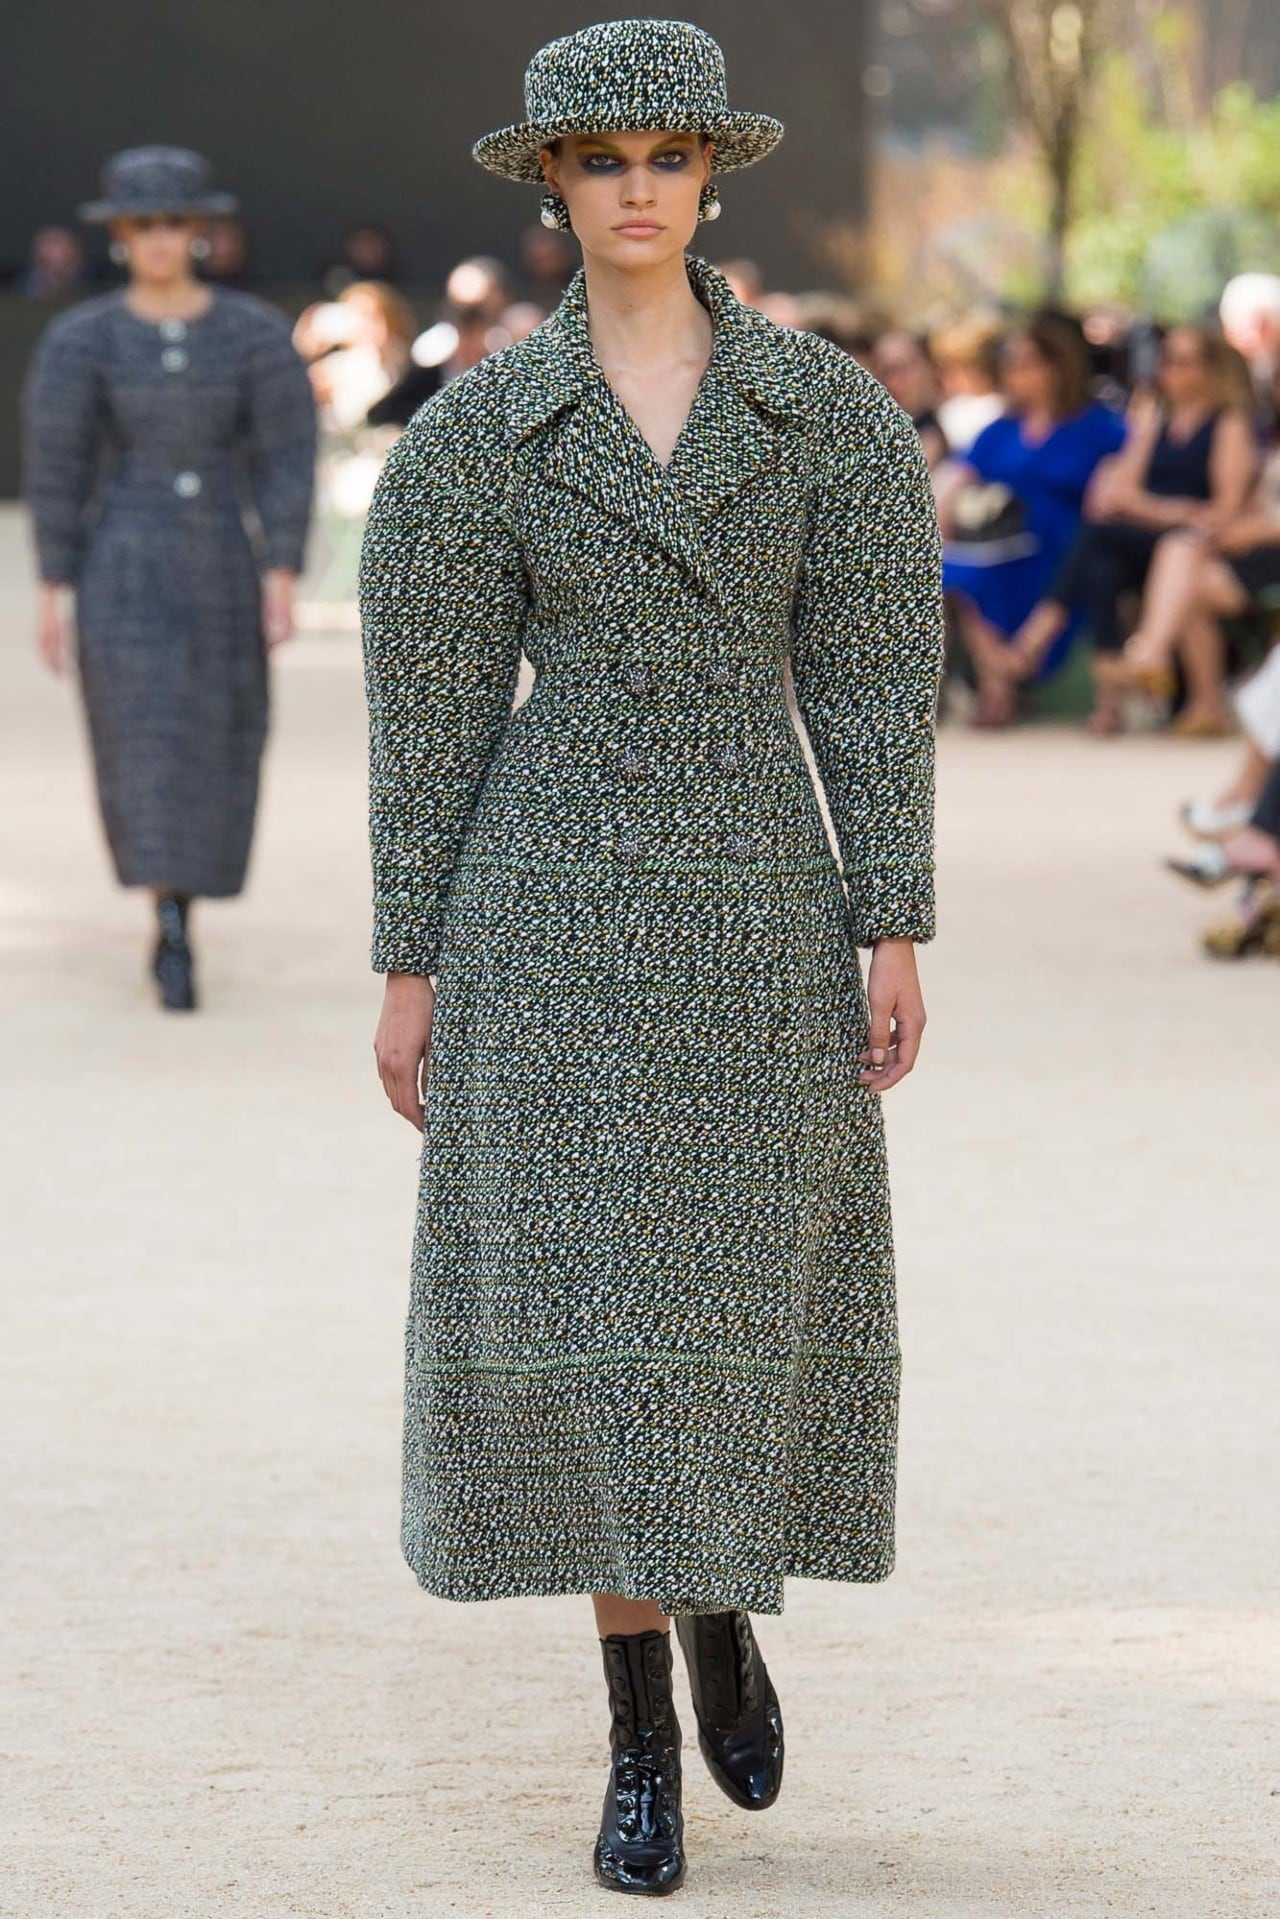 Chanel haute couture autumn/winter '17/'18